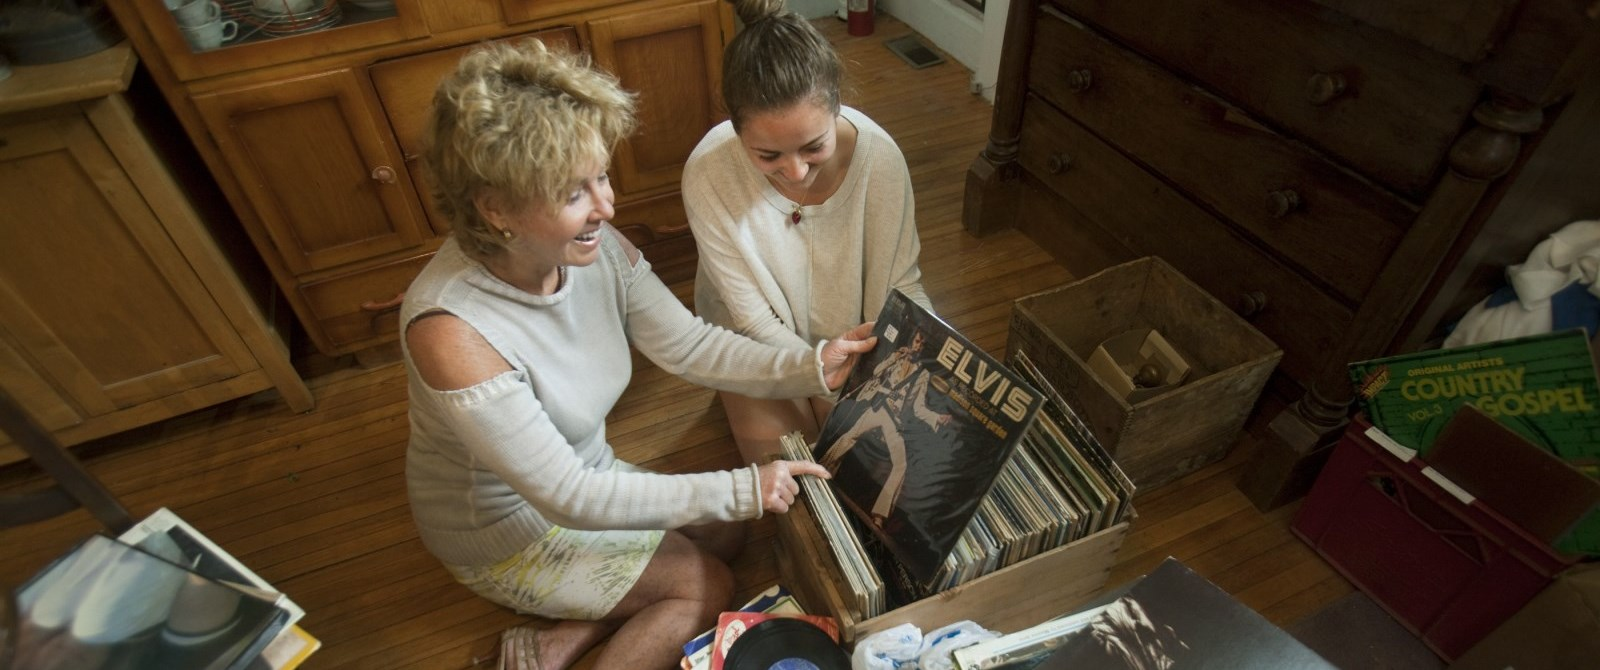 Woman and Girl looking at records in an antique shop